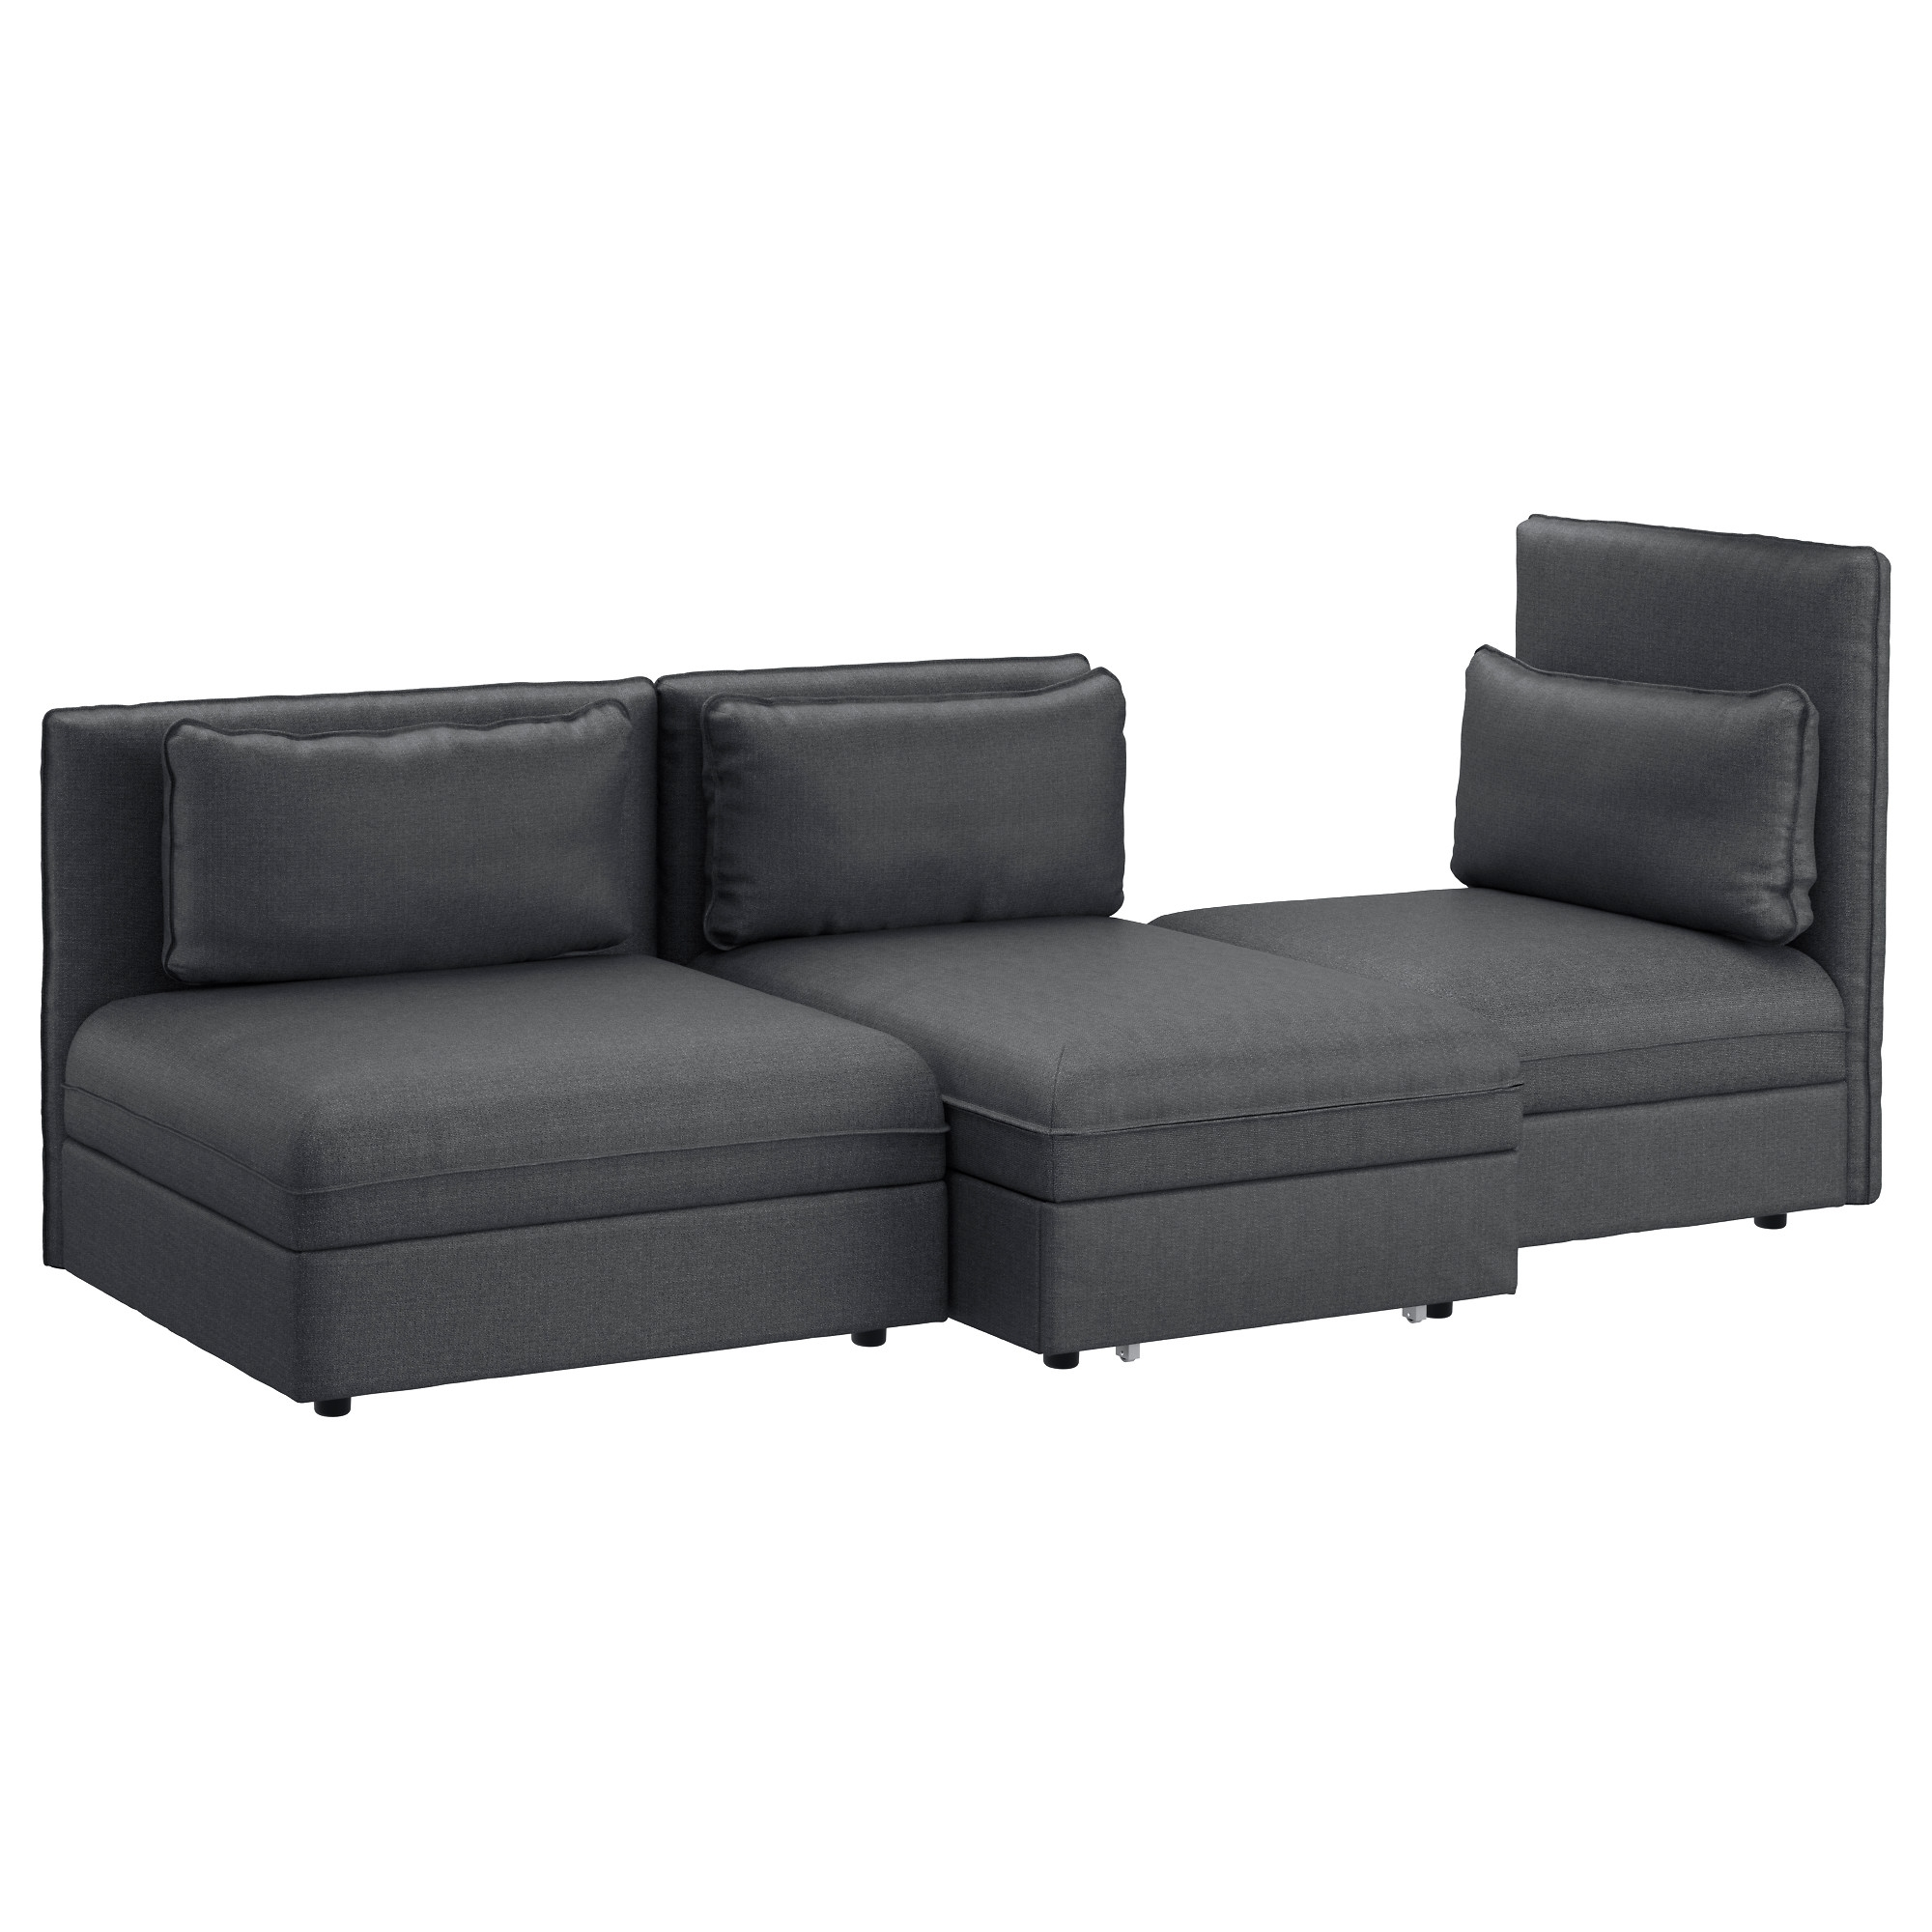 Vallentuna Sleeper Sectional, 3 Seat – Hillared Dark Gray – Ikea Inside Best And Newest Ikea Sectional Sofa Beds (View 11 of 15)